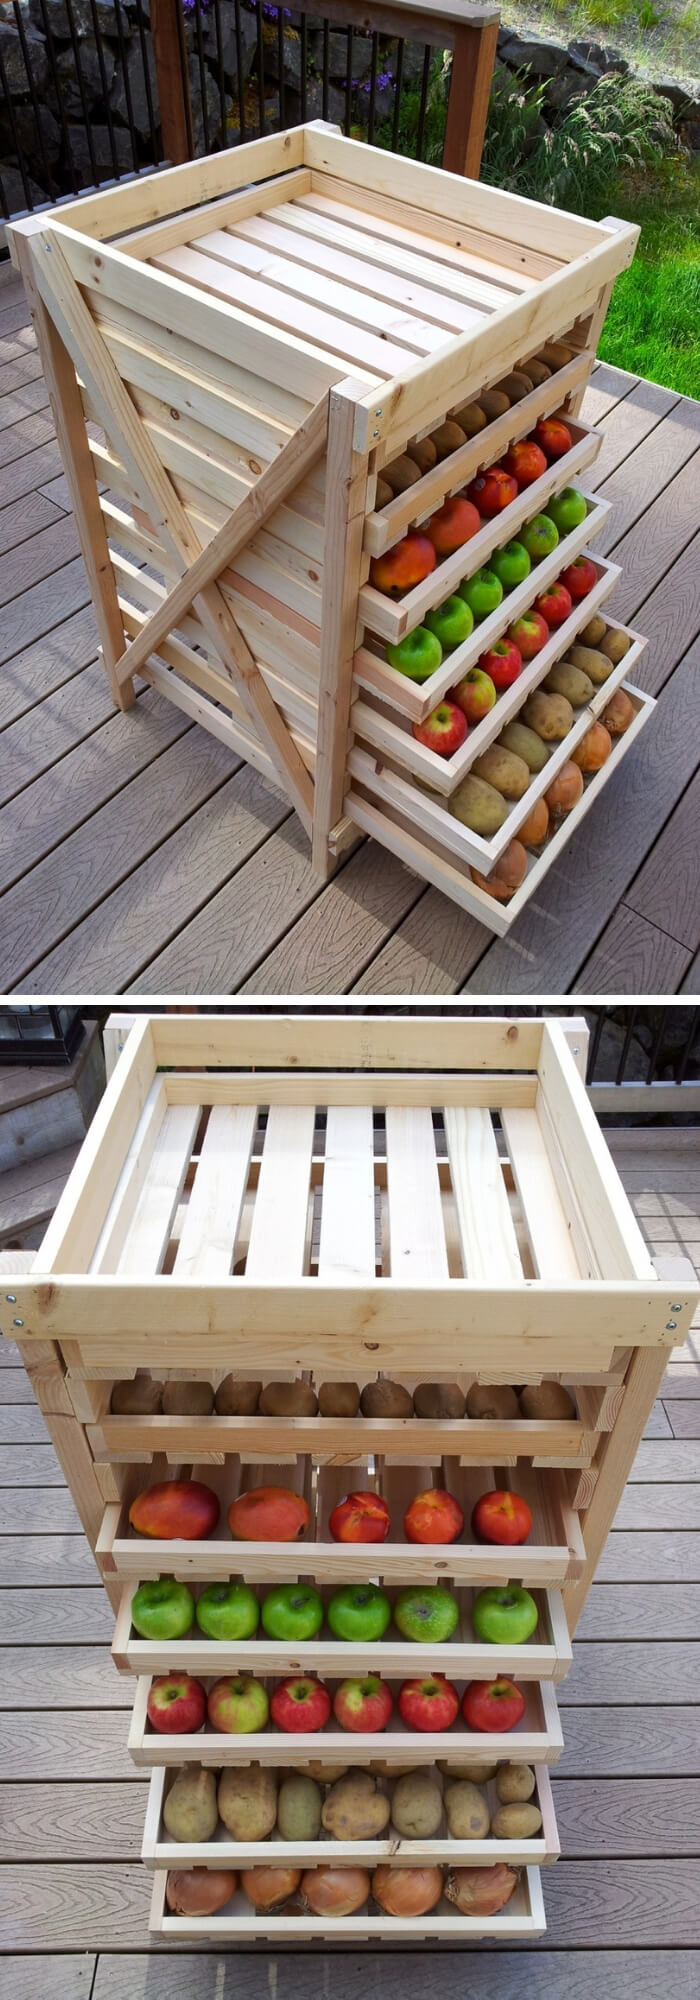 Food storage drying rack | Best Fruit and Vegetable Storage Ideas For Your Kitchen